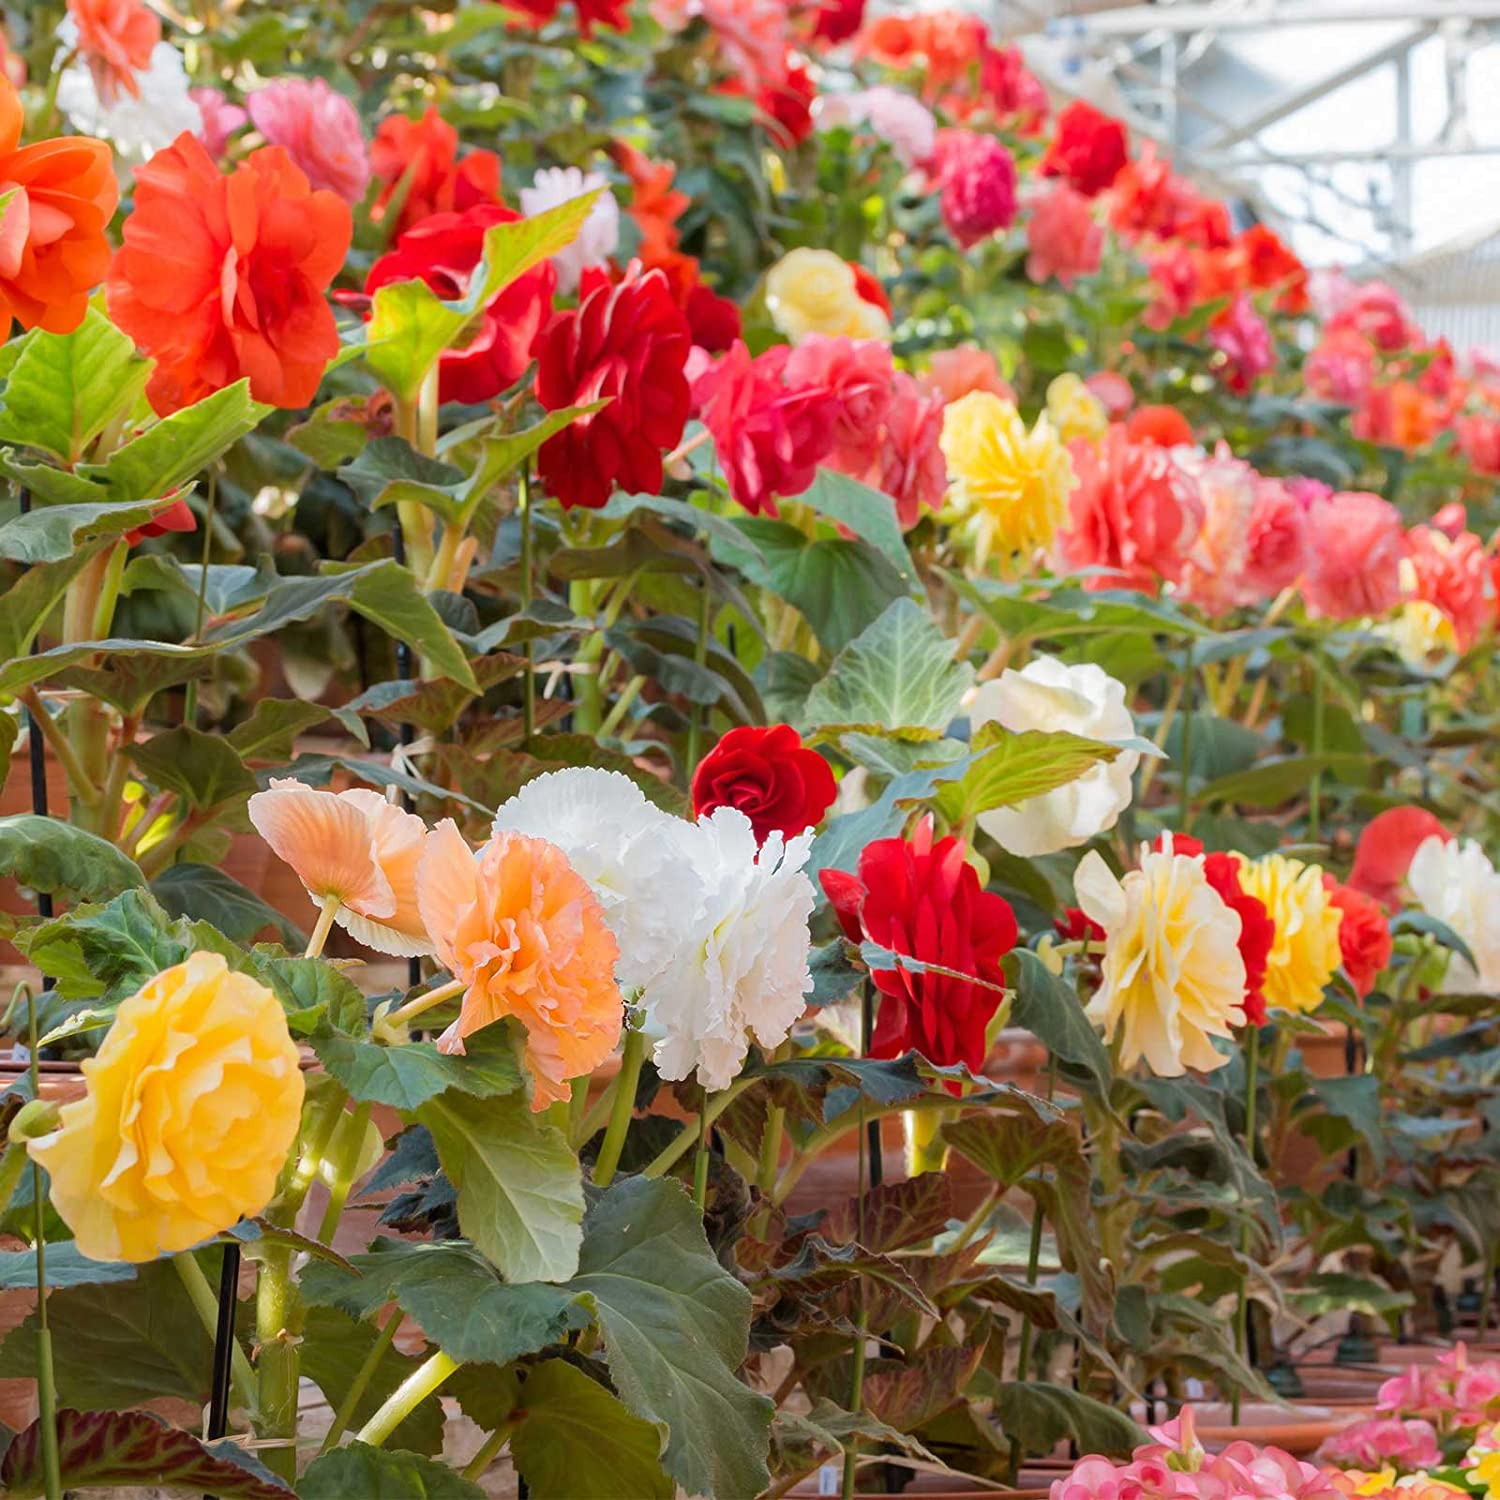 Tuberous Begonia Nonstop Series Plant Seeds (Pelleted): Mocha Mix - 100 Seeds - Annual Decorative Flower Plant, Houseplant